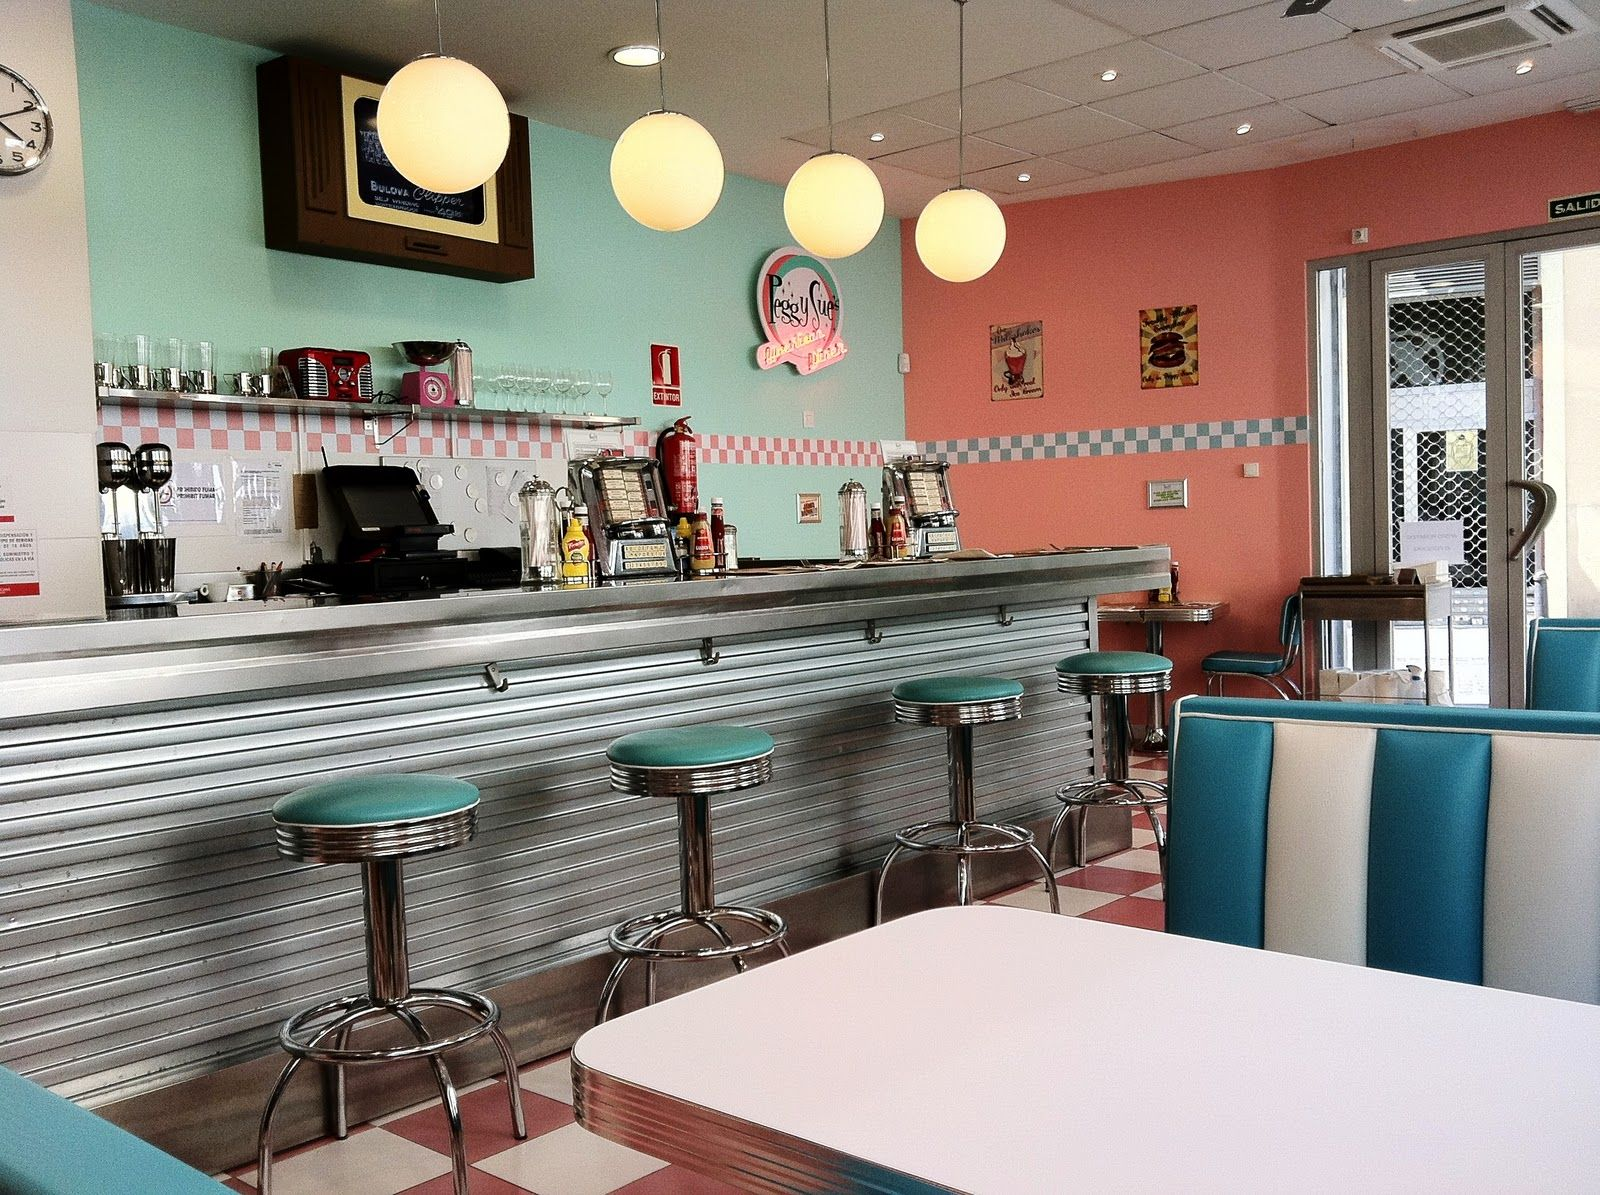 1950s decor 1950 39 s style american diner in valencia spain l ve the 50 39 s pinterest 1950s. Black Bedroom Furniture Sets. Home Design Ideas